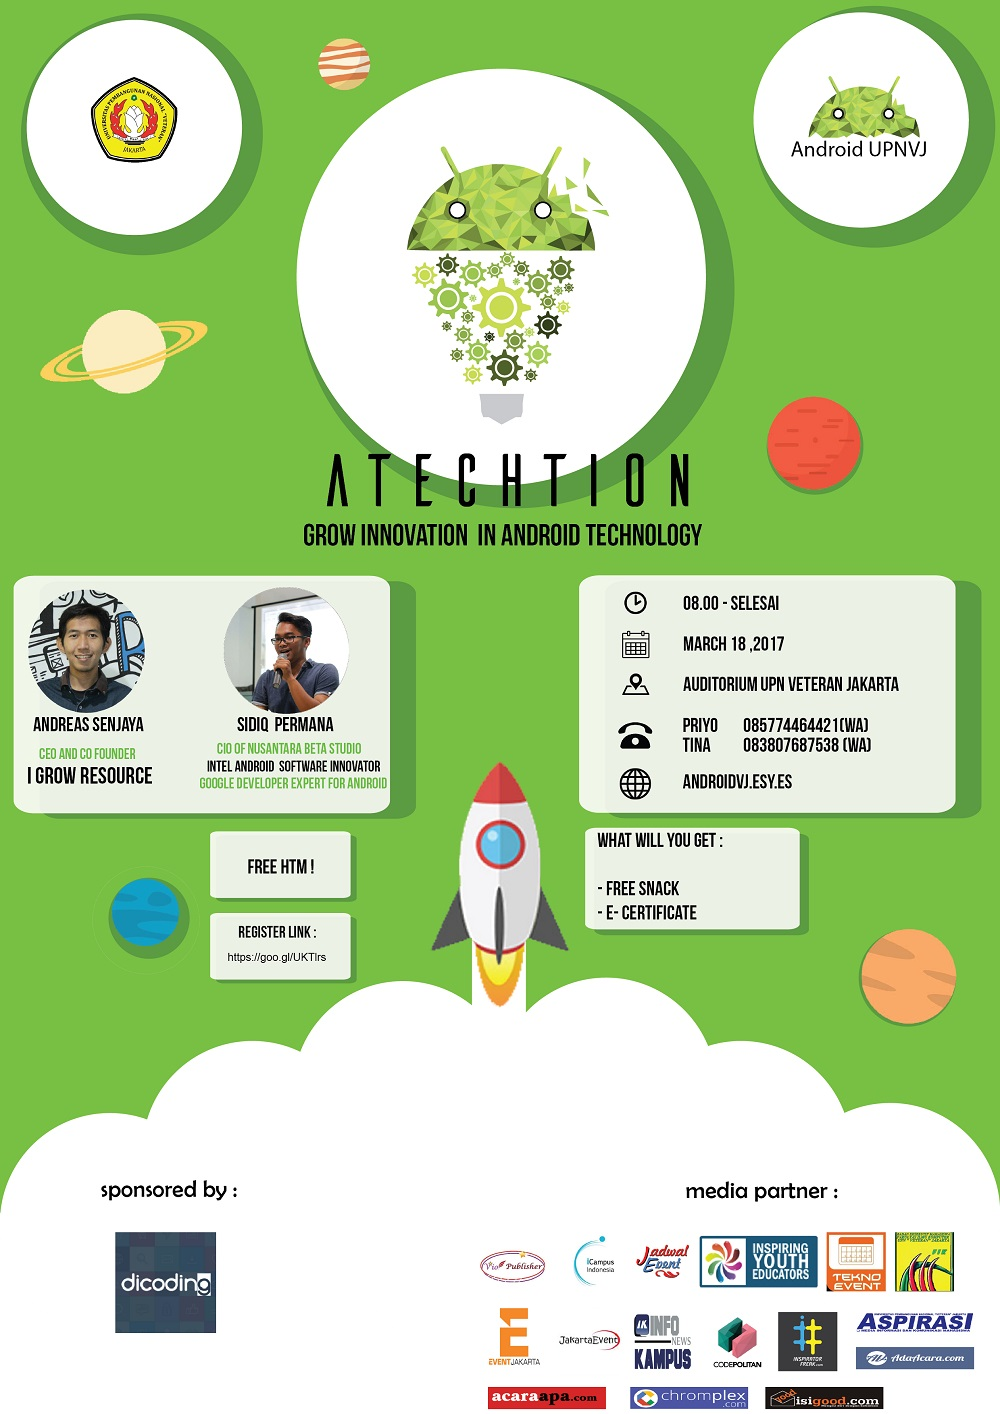 Seminar Android Technology and Innovation (ATECHTION) - UPN Veteran Jakarta, 18 Maret 2017